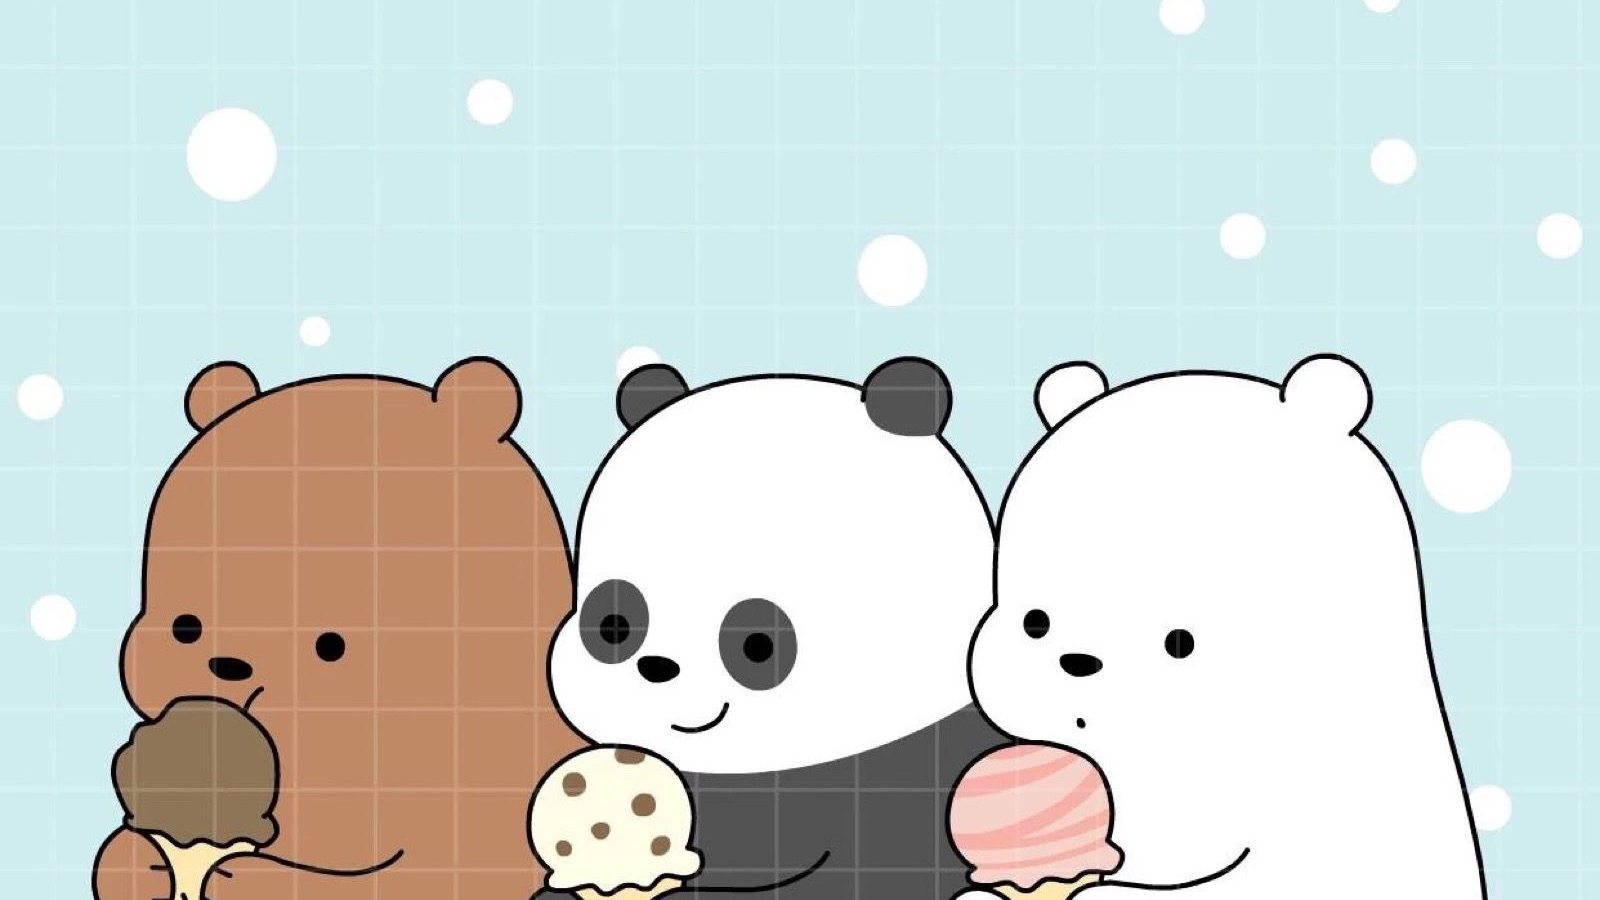 Free Download We Bare Bears Bear Wallpaper Pinterest We Bare Bears 1600x2844 For Your Desktop Mobile Tablet Explore 16 We Bare Bears Wallpapers We Bare Bears Wallpapers We Bare